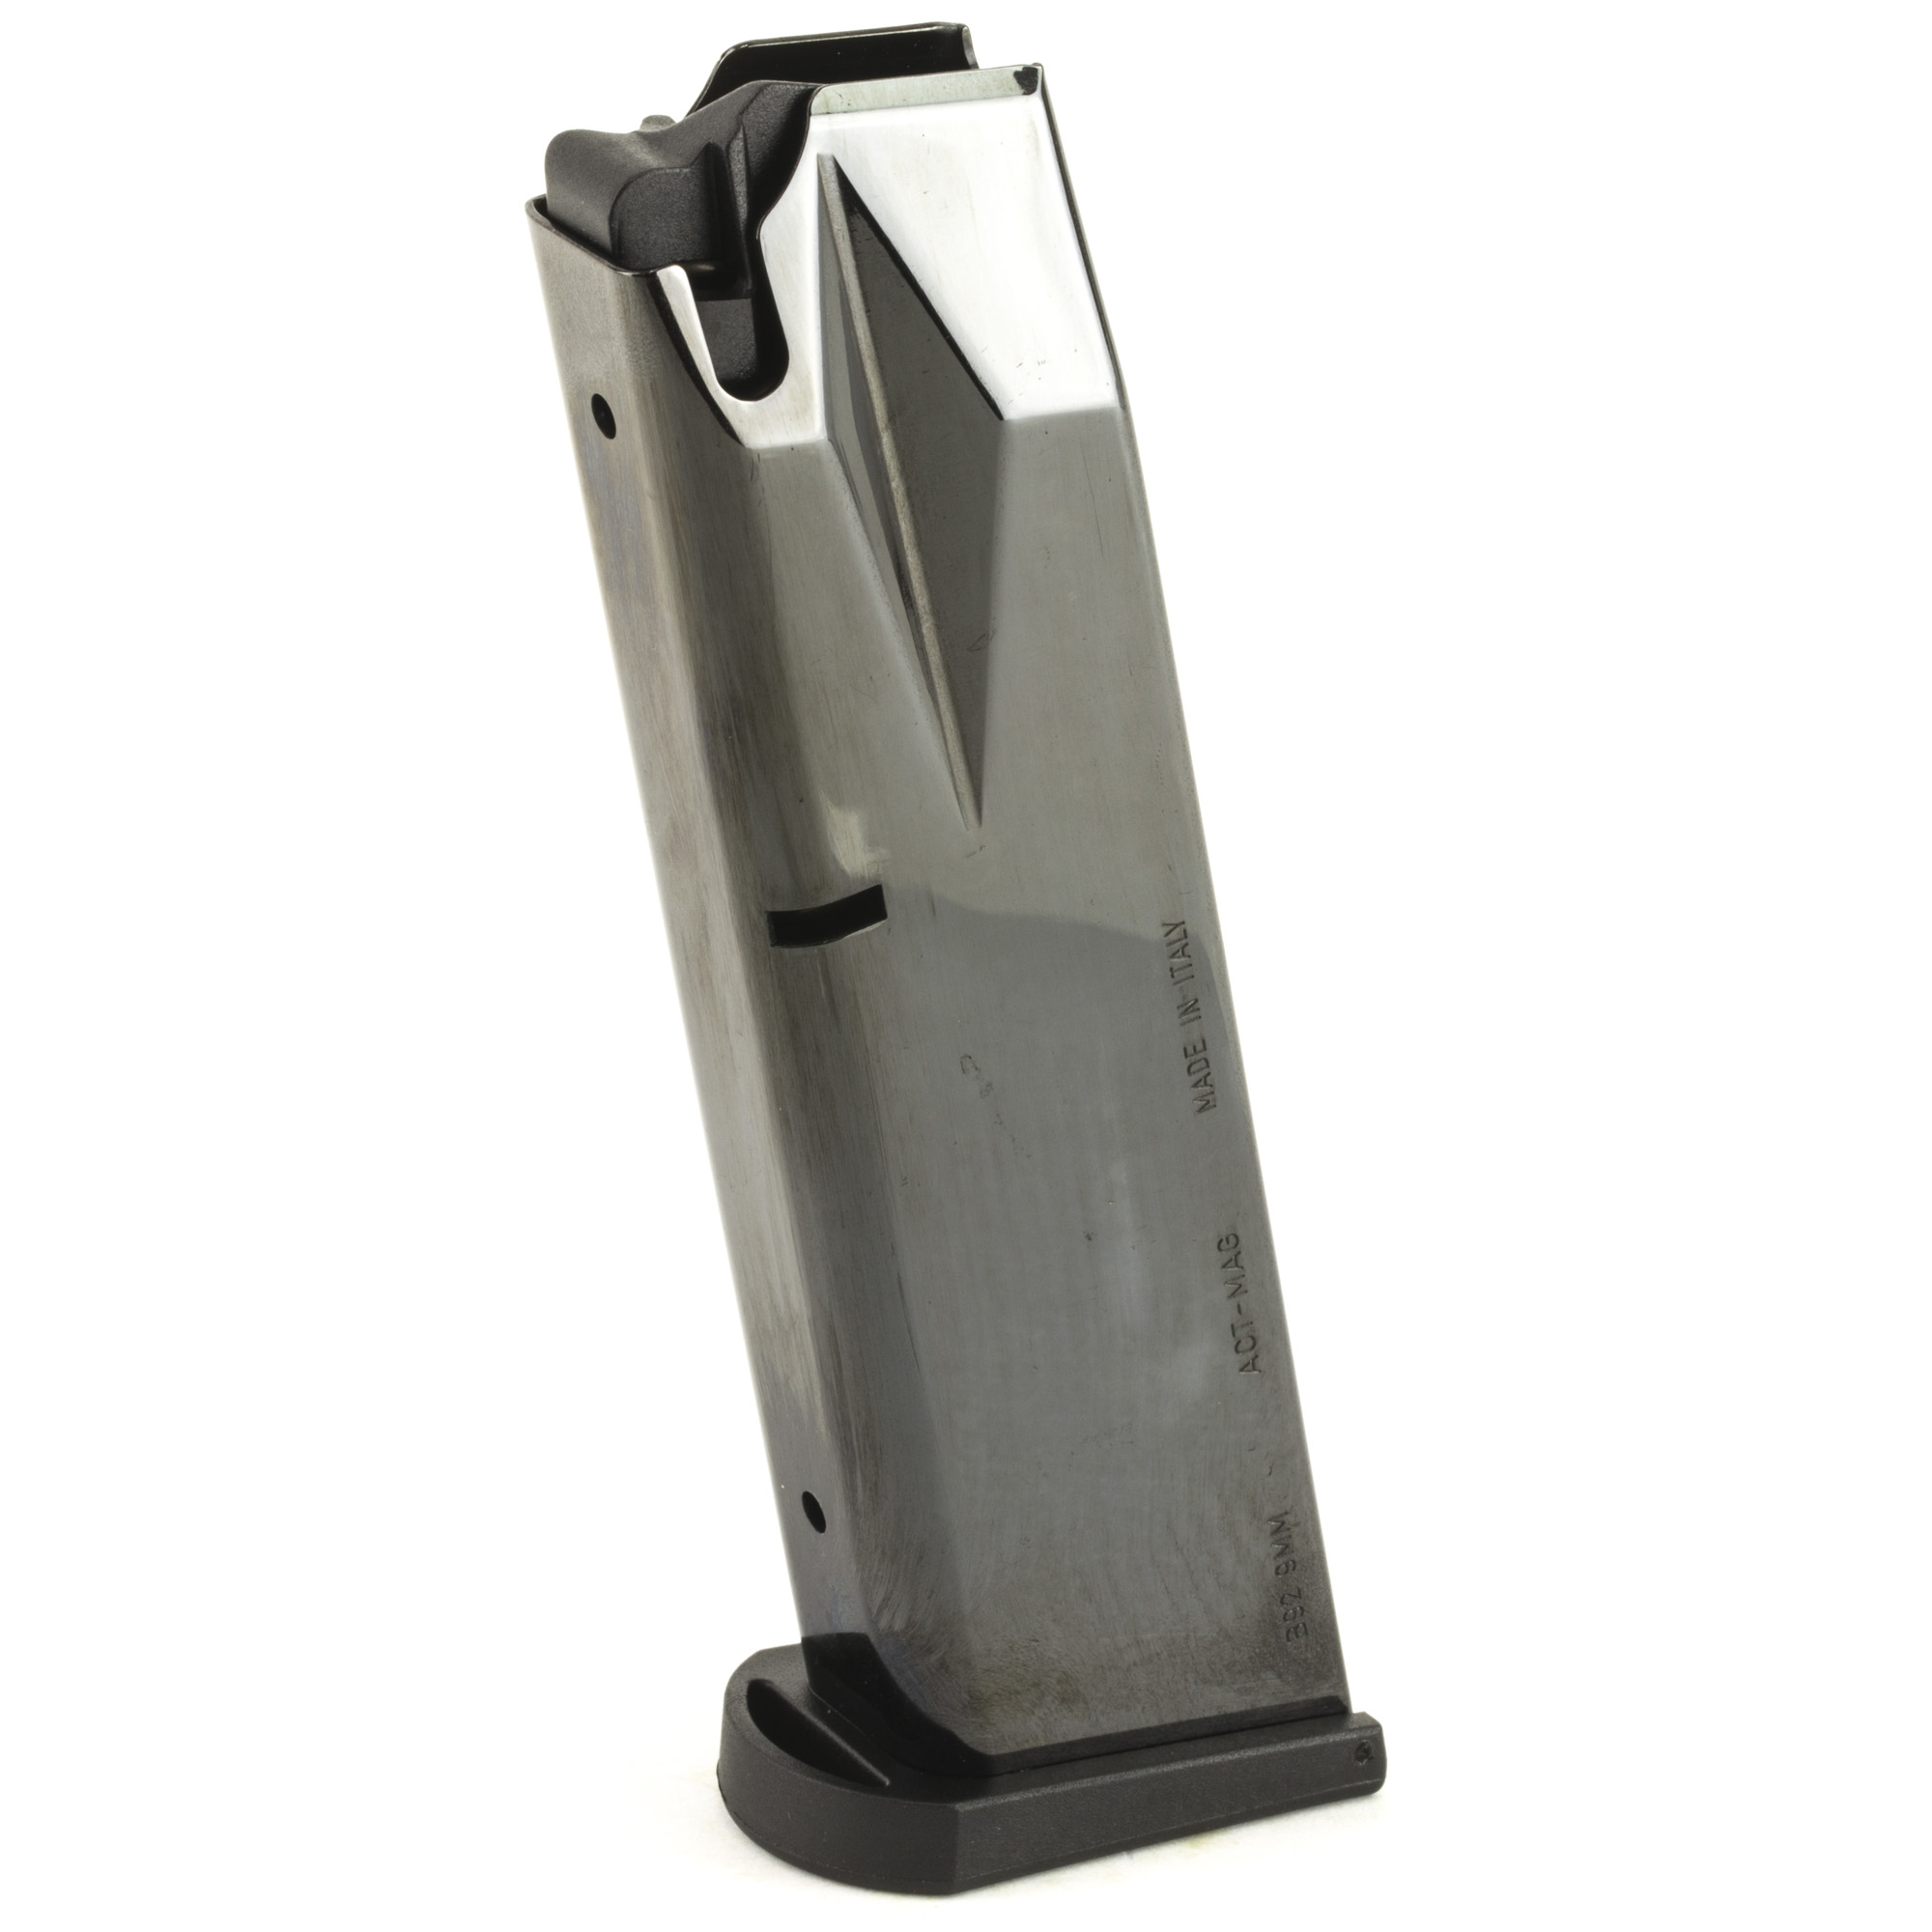 These Flush Fit 17RD Beretta magazines are of the same high quality you have come to expect from ACT-MAG. Guaranteed to function reliably! They fit the Beretta Model 92/M9 and are Made in Italy.